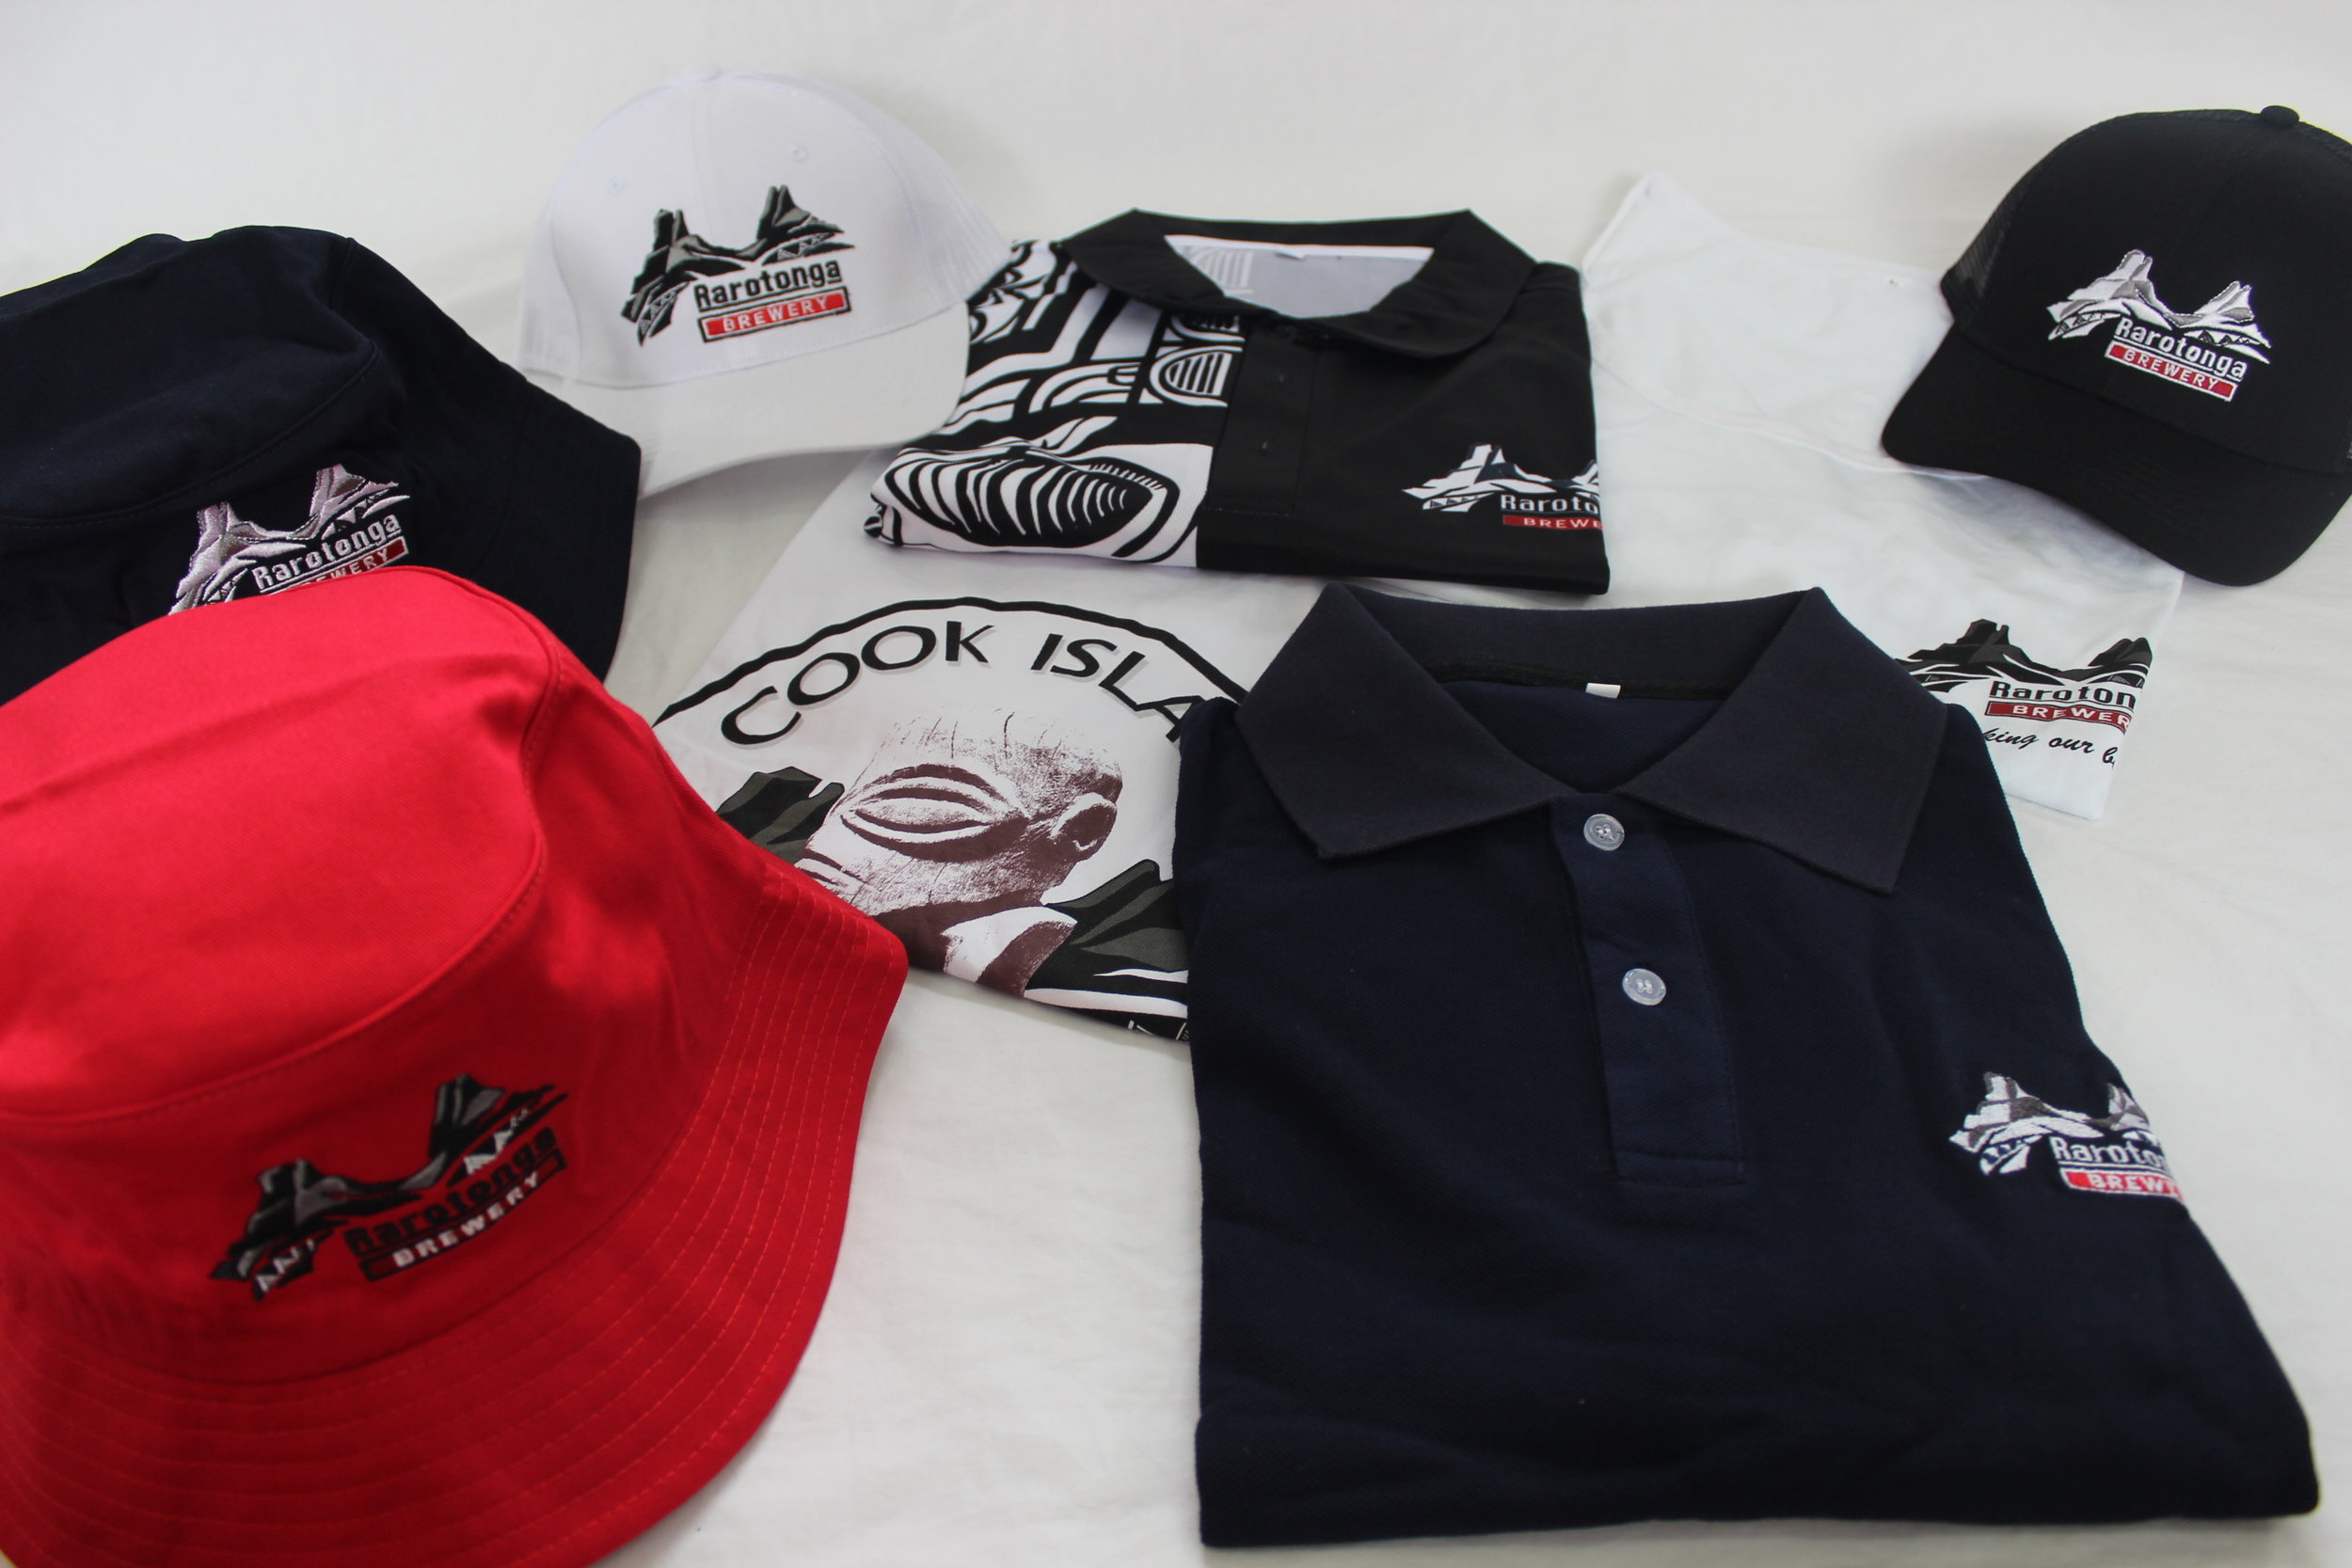 T-shirts, Hats and Singlets   We stock a range of sizes colours and designs. Come down check out the swagger for yourself.